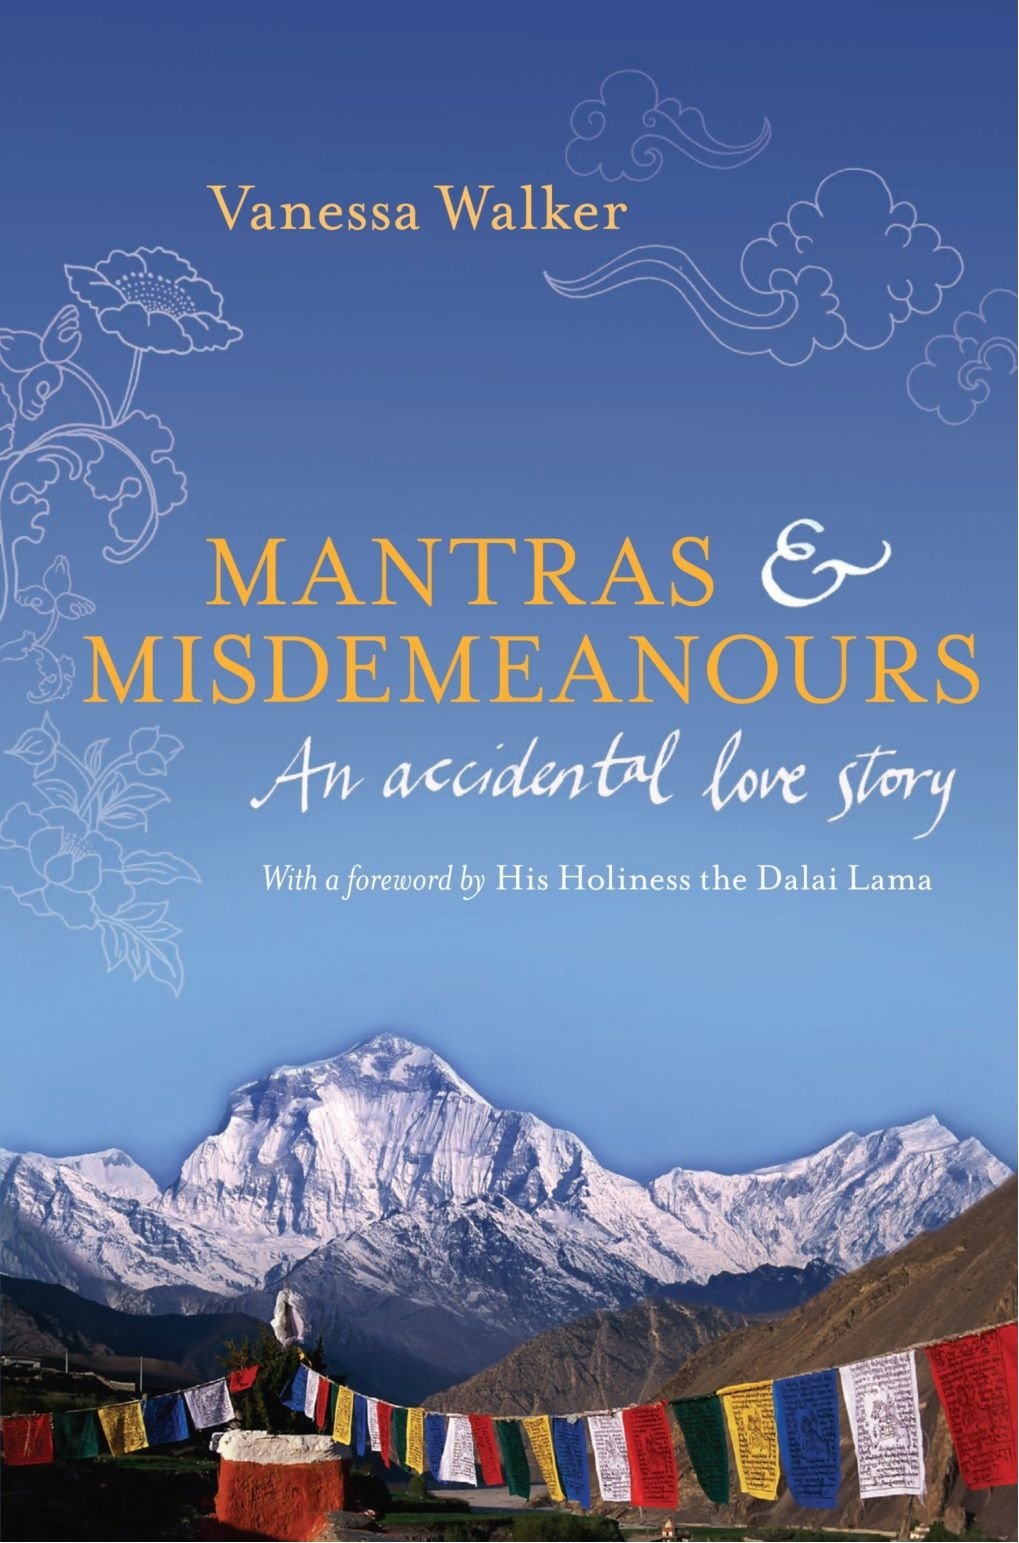 Mantras & Misdemeanours: An Accidental Love Story free download